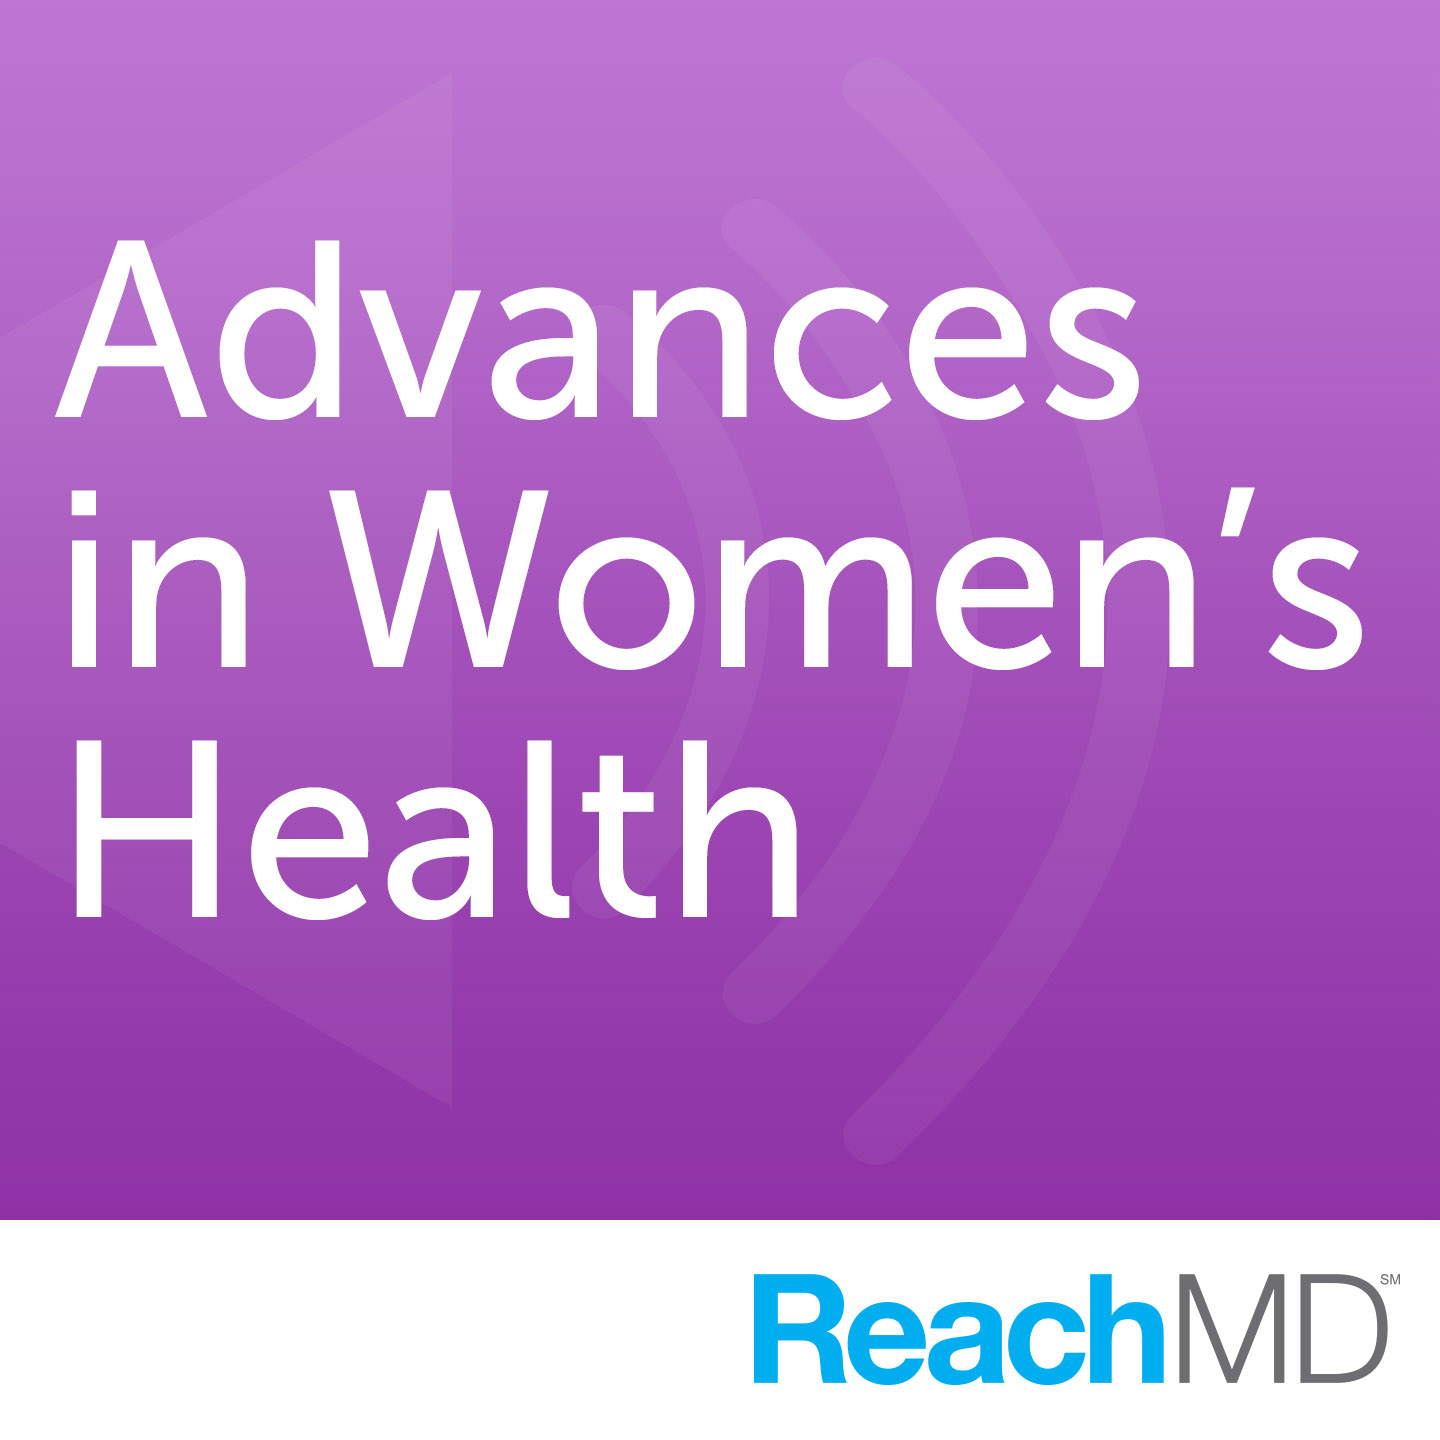 Advances in Women's Health